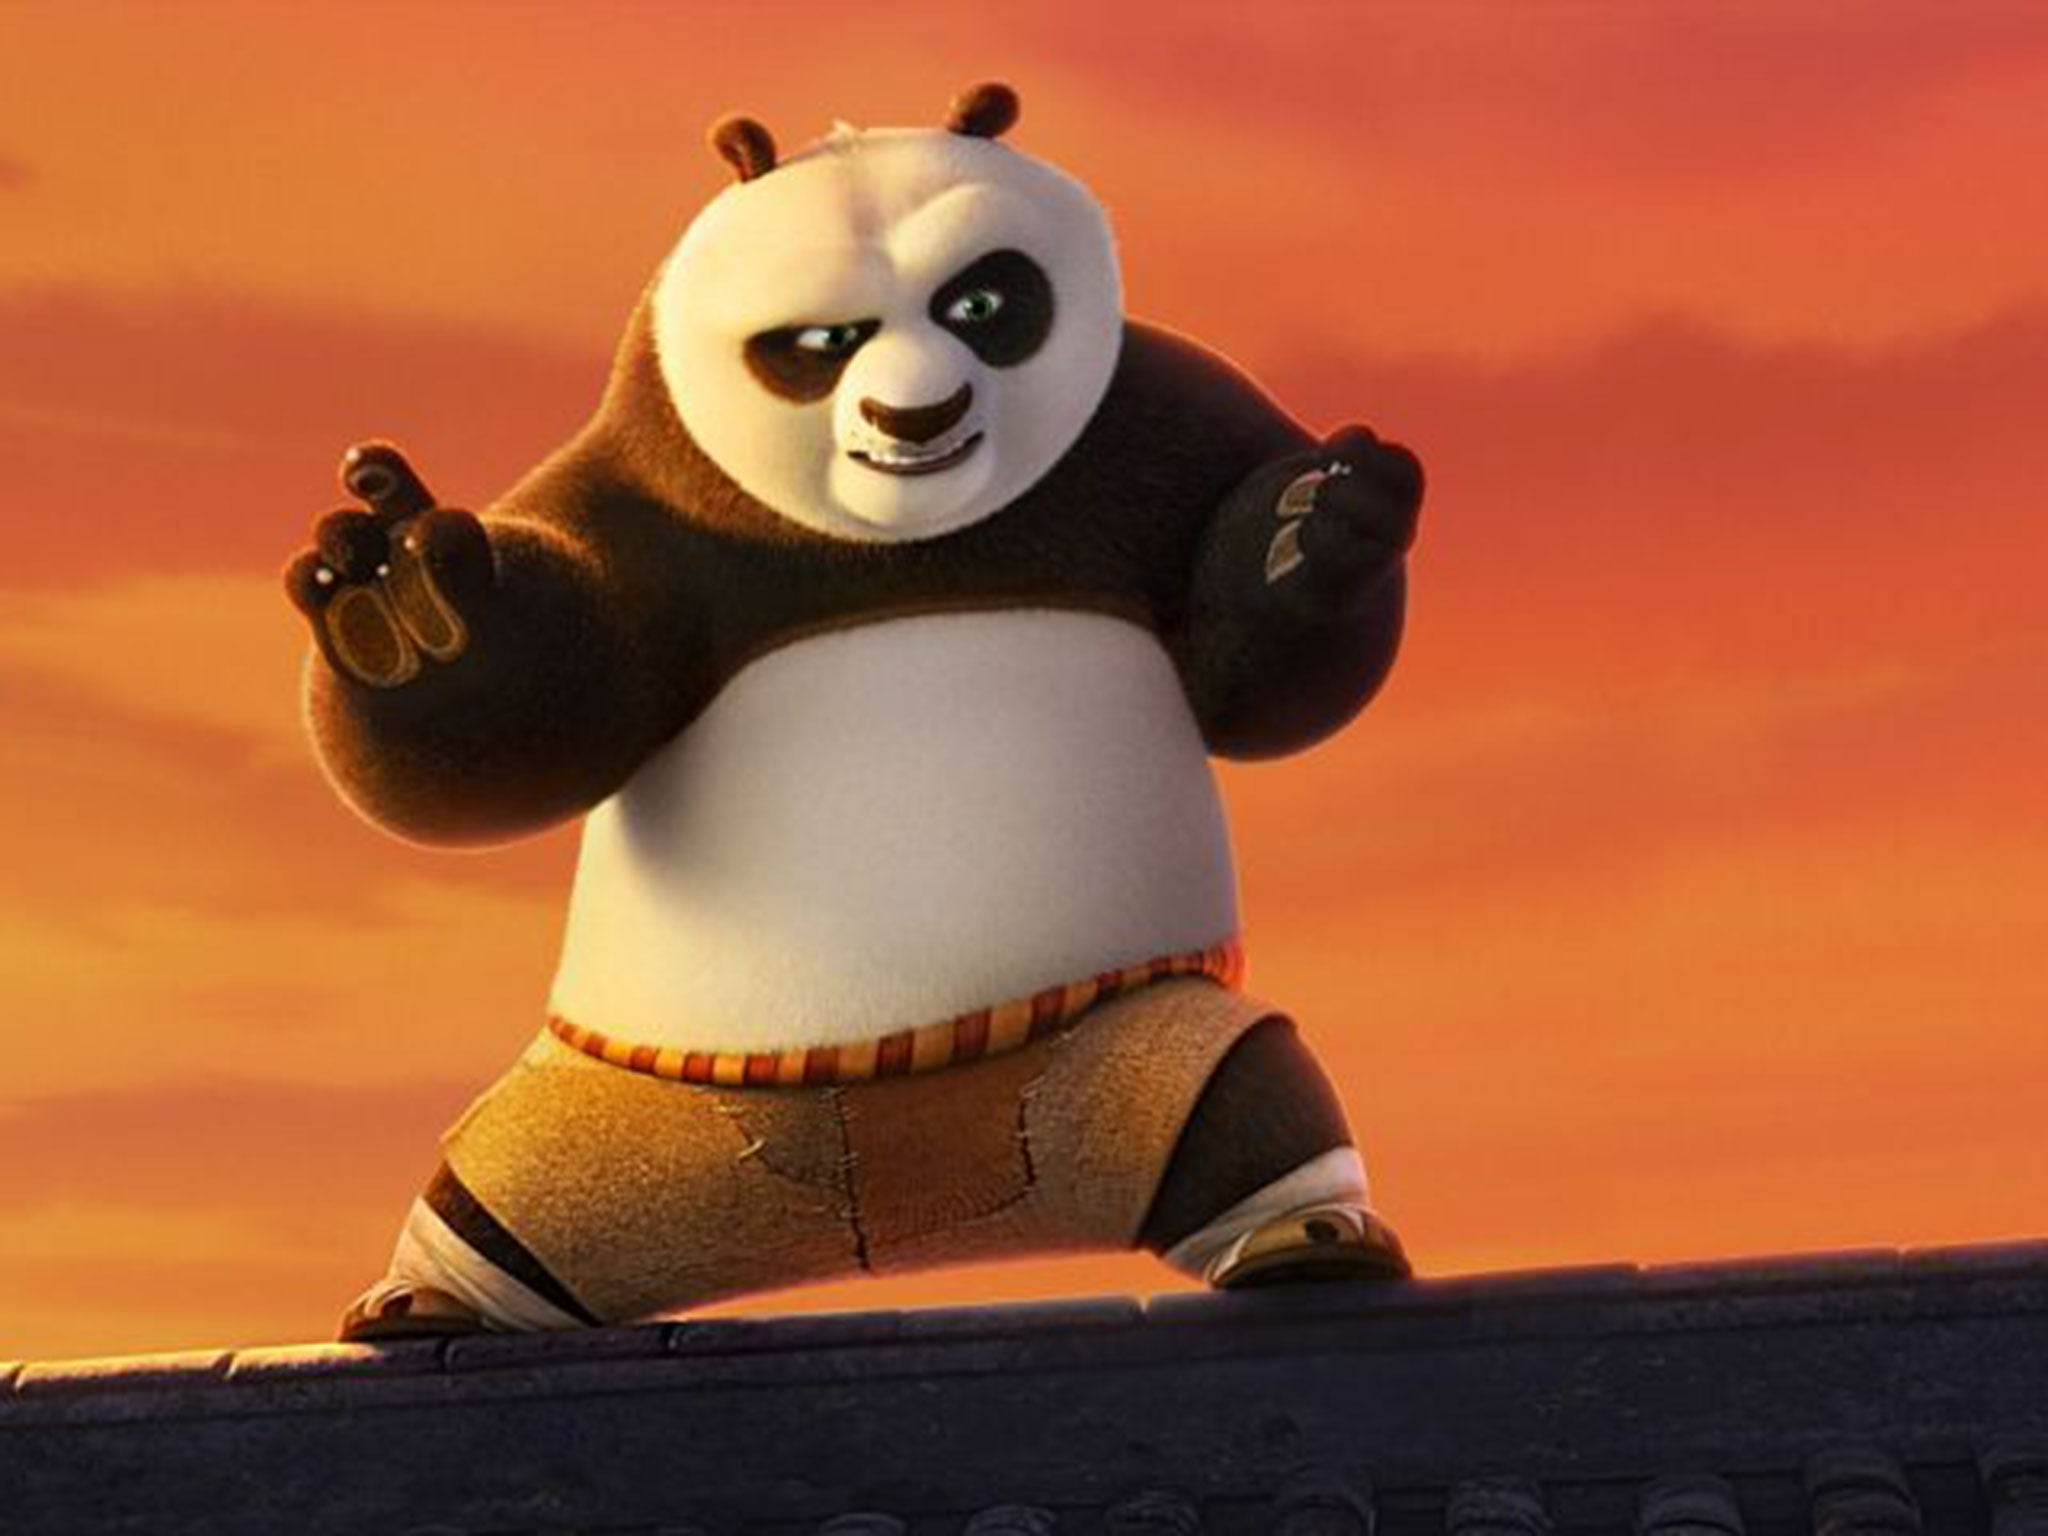 kung fu panda 3, film review: striking back in a lively froth of fun